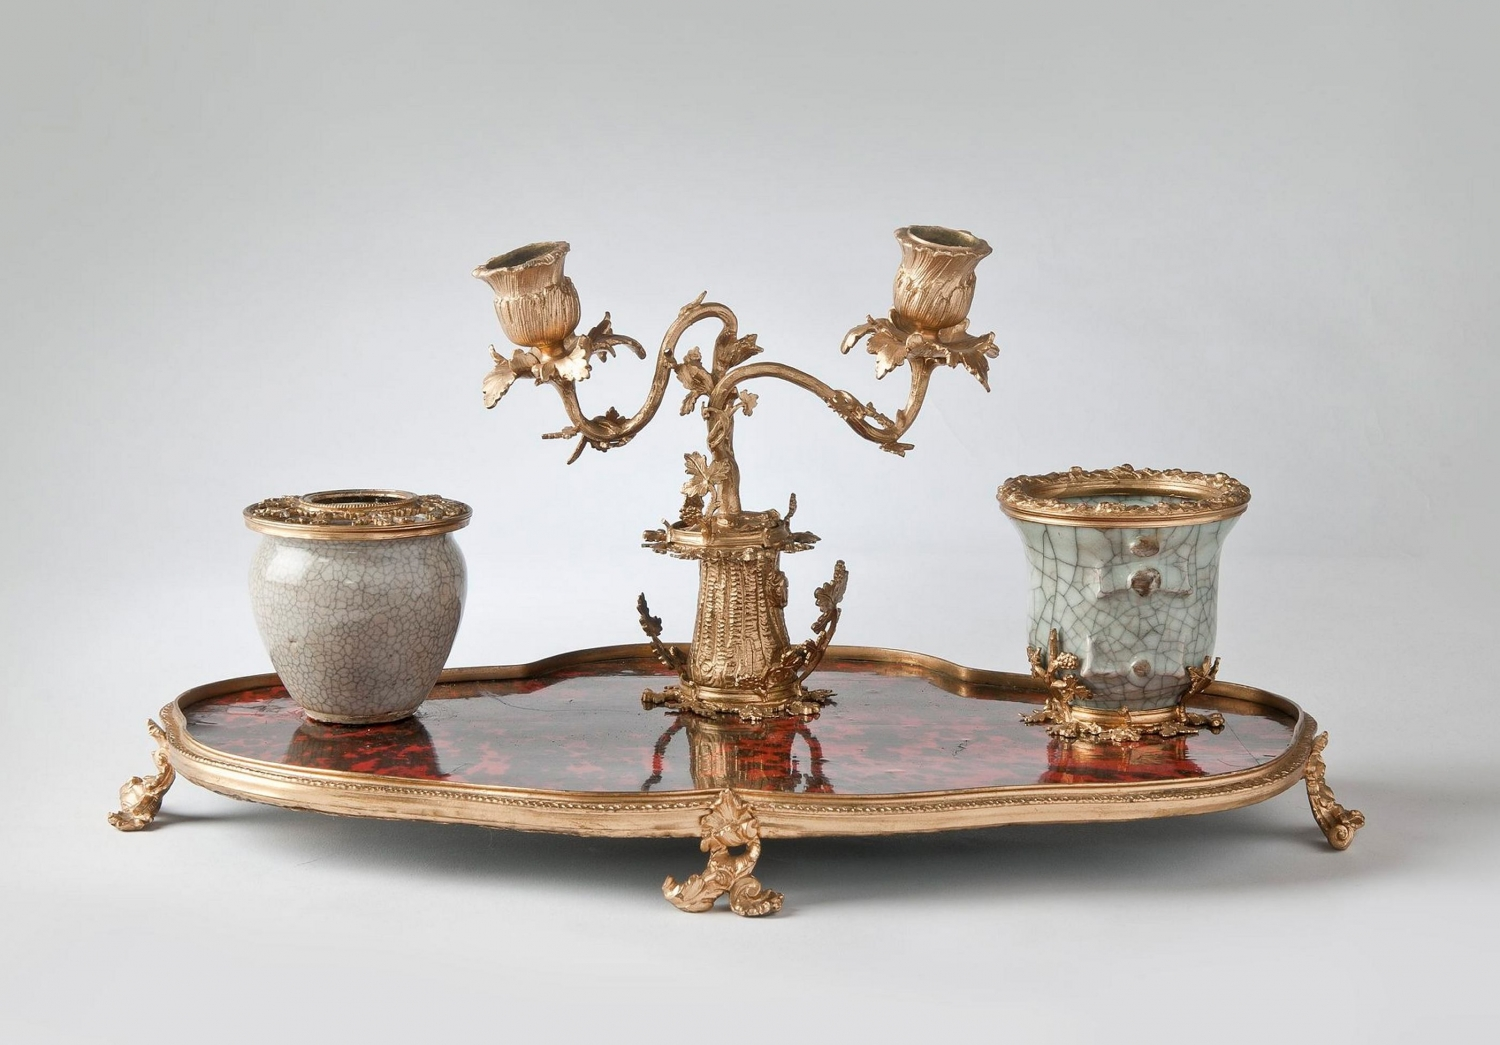 Tortoiseshell, ceramic and gilt inkstand set, made c1855, formerly the property of William Charles Wentworth.